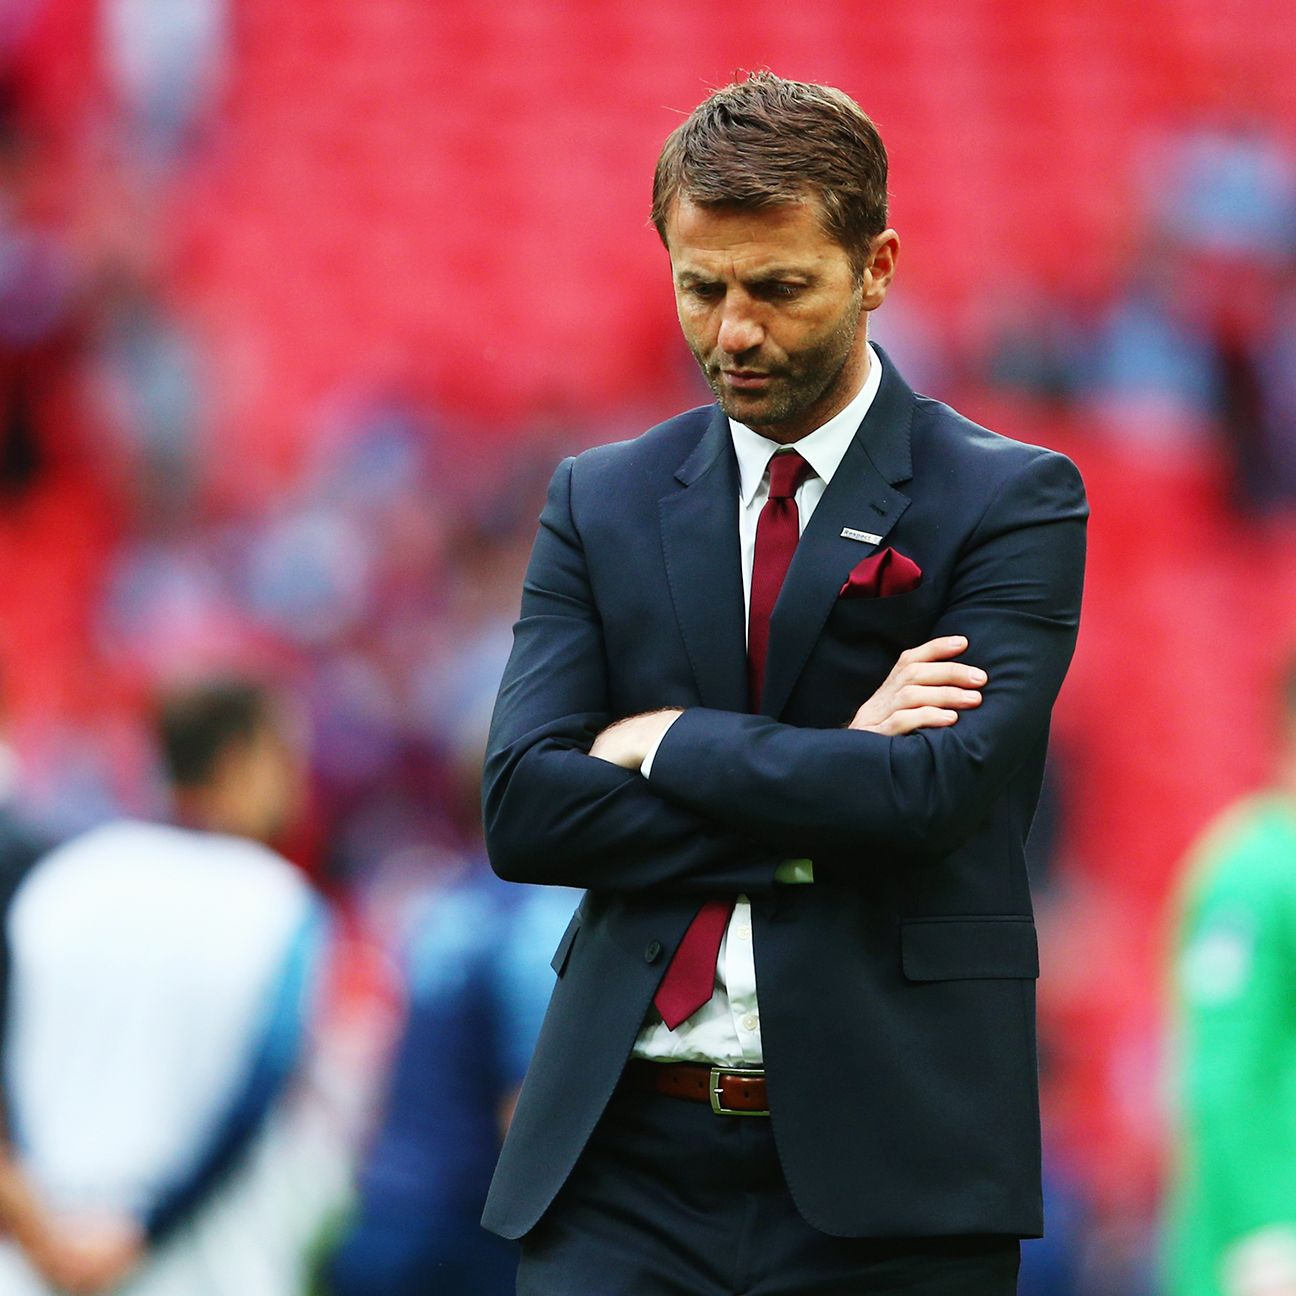 The pressure is on Tim Sherwood to elevate Aston Villa from the relegation zone.